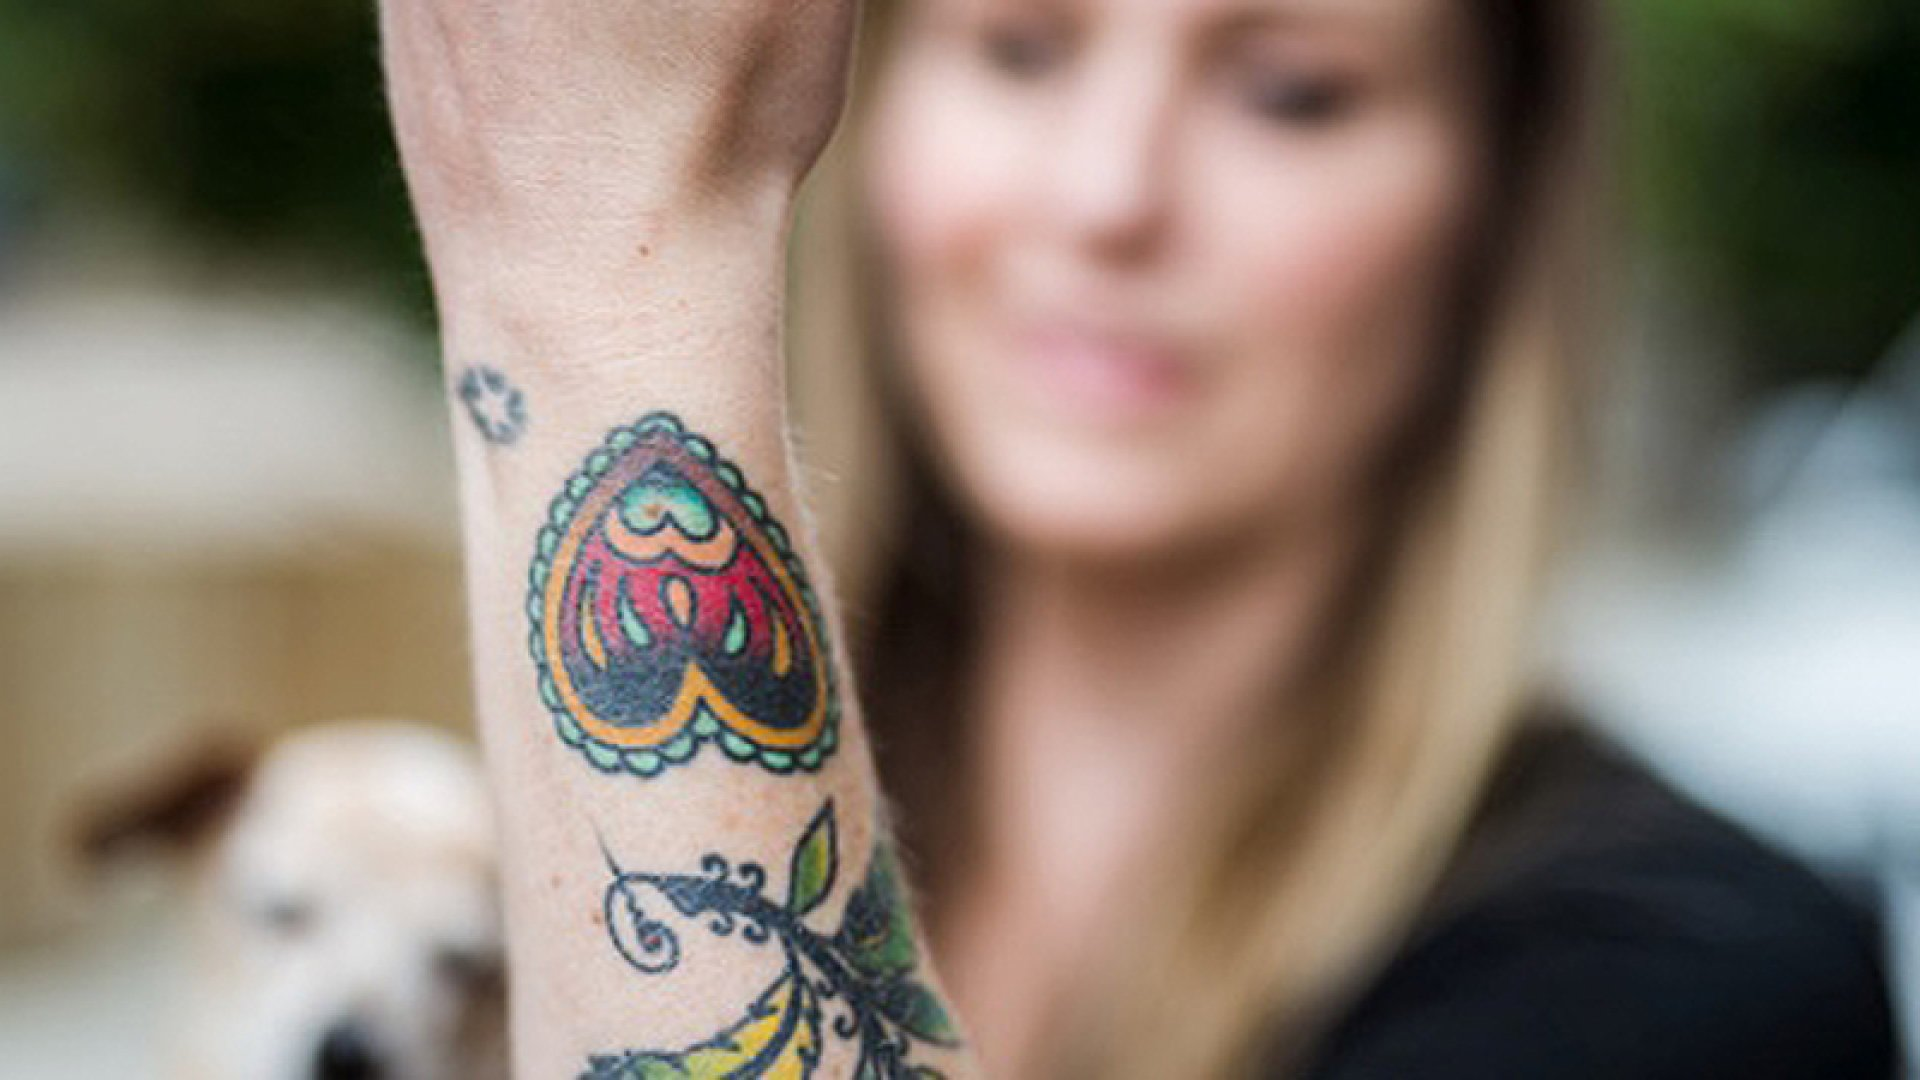 Everence offers customers a service in which they can incorporate DNA, hair or cremated remains into any tattoo.